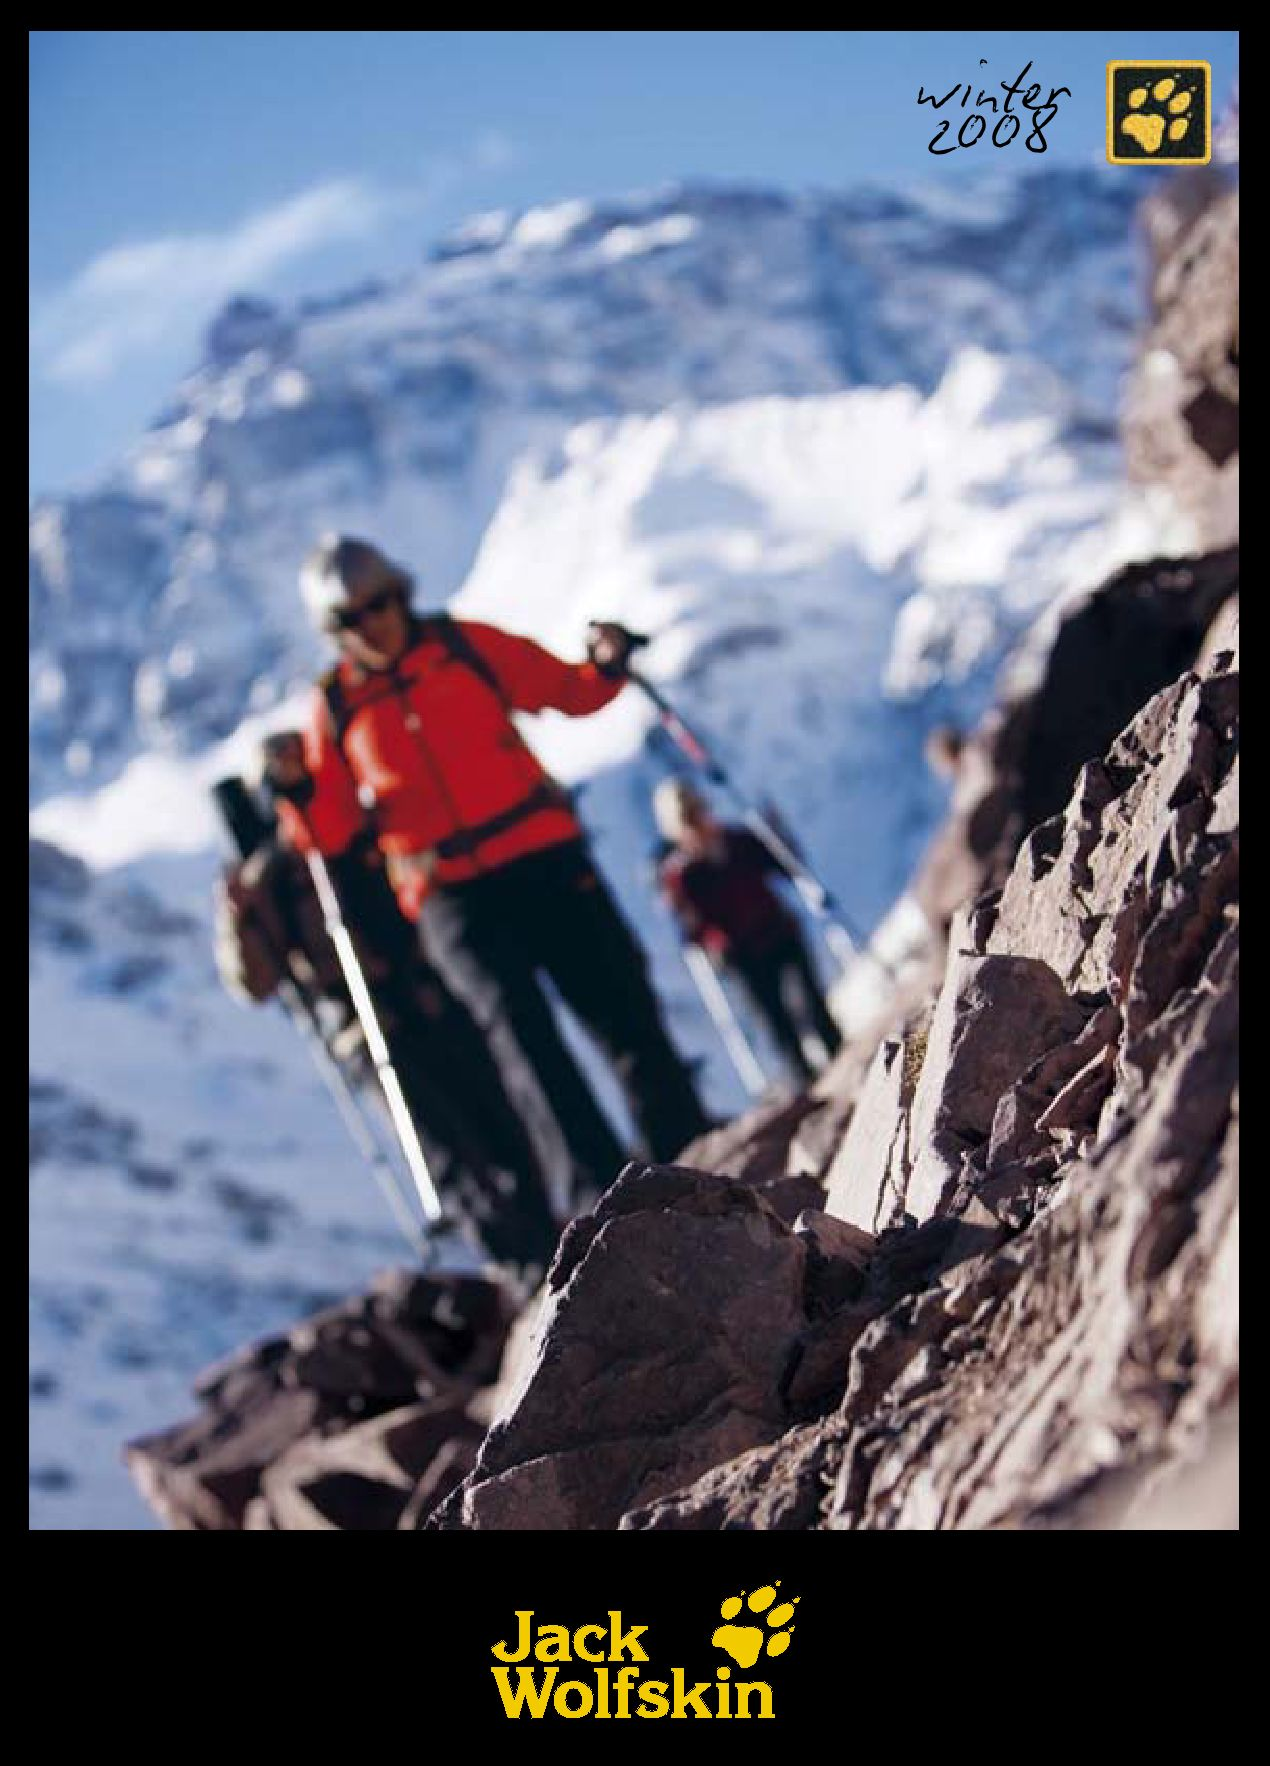 5b33d55772 Jack Wolfskin Winter 2008 Catalogue by Joonas Teeriaho - issuu